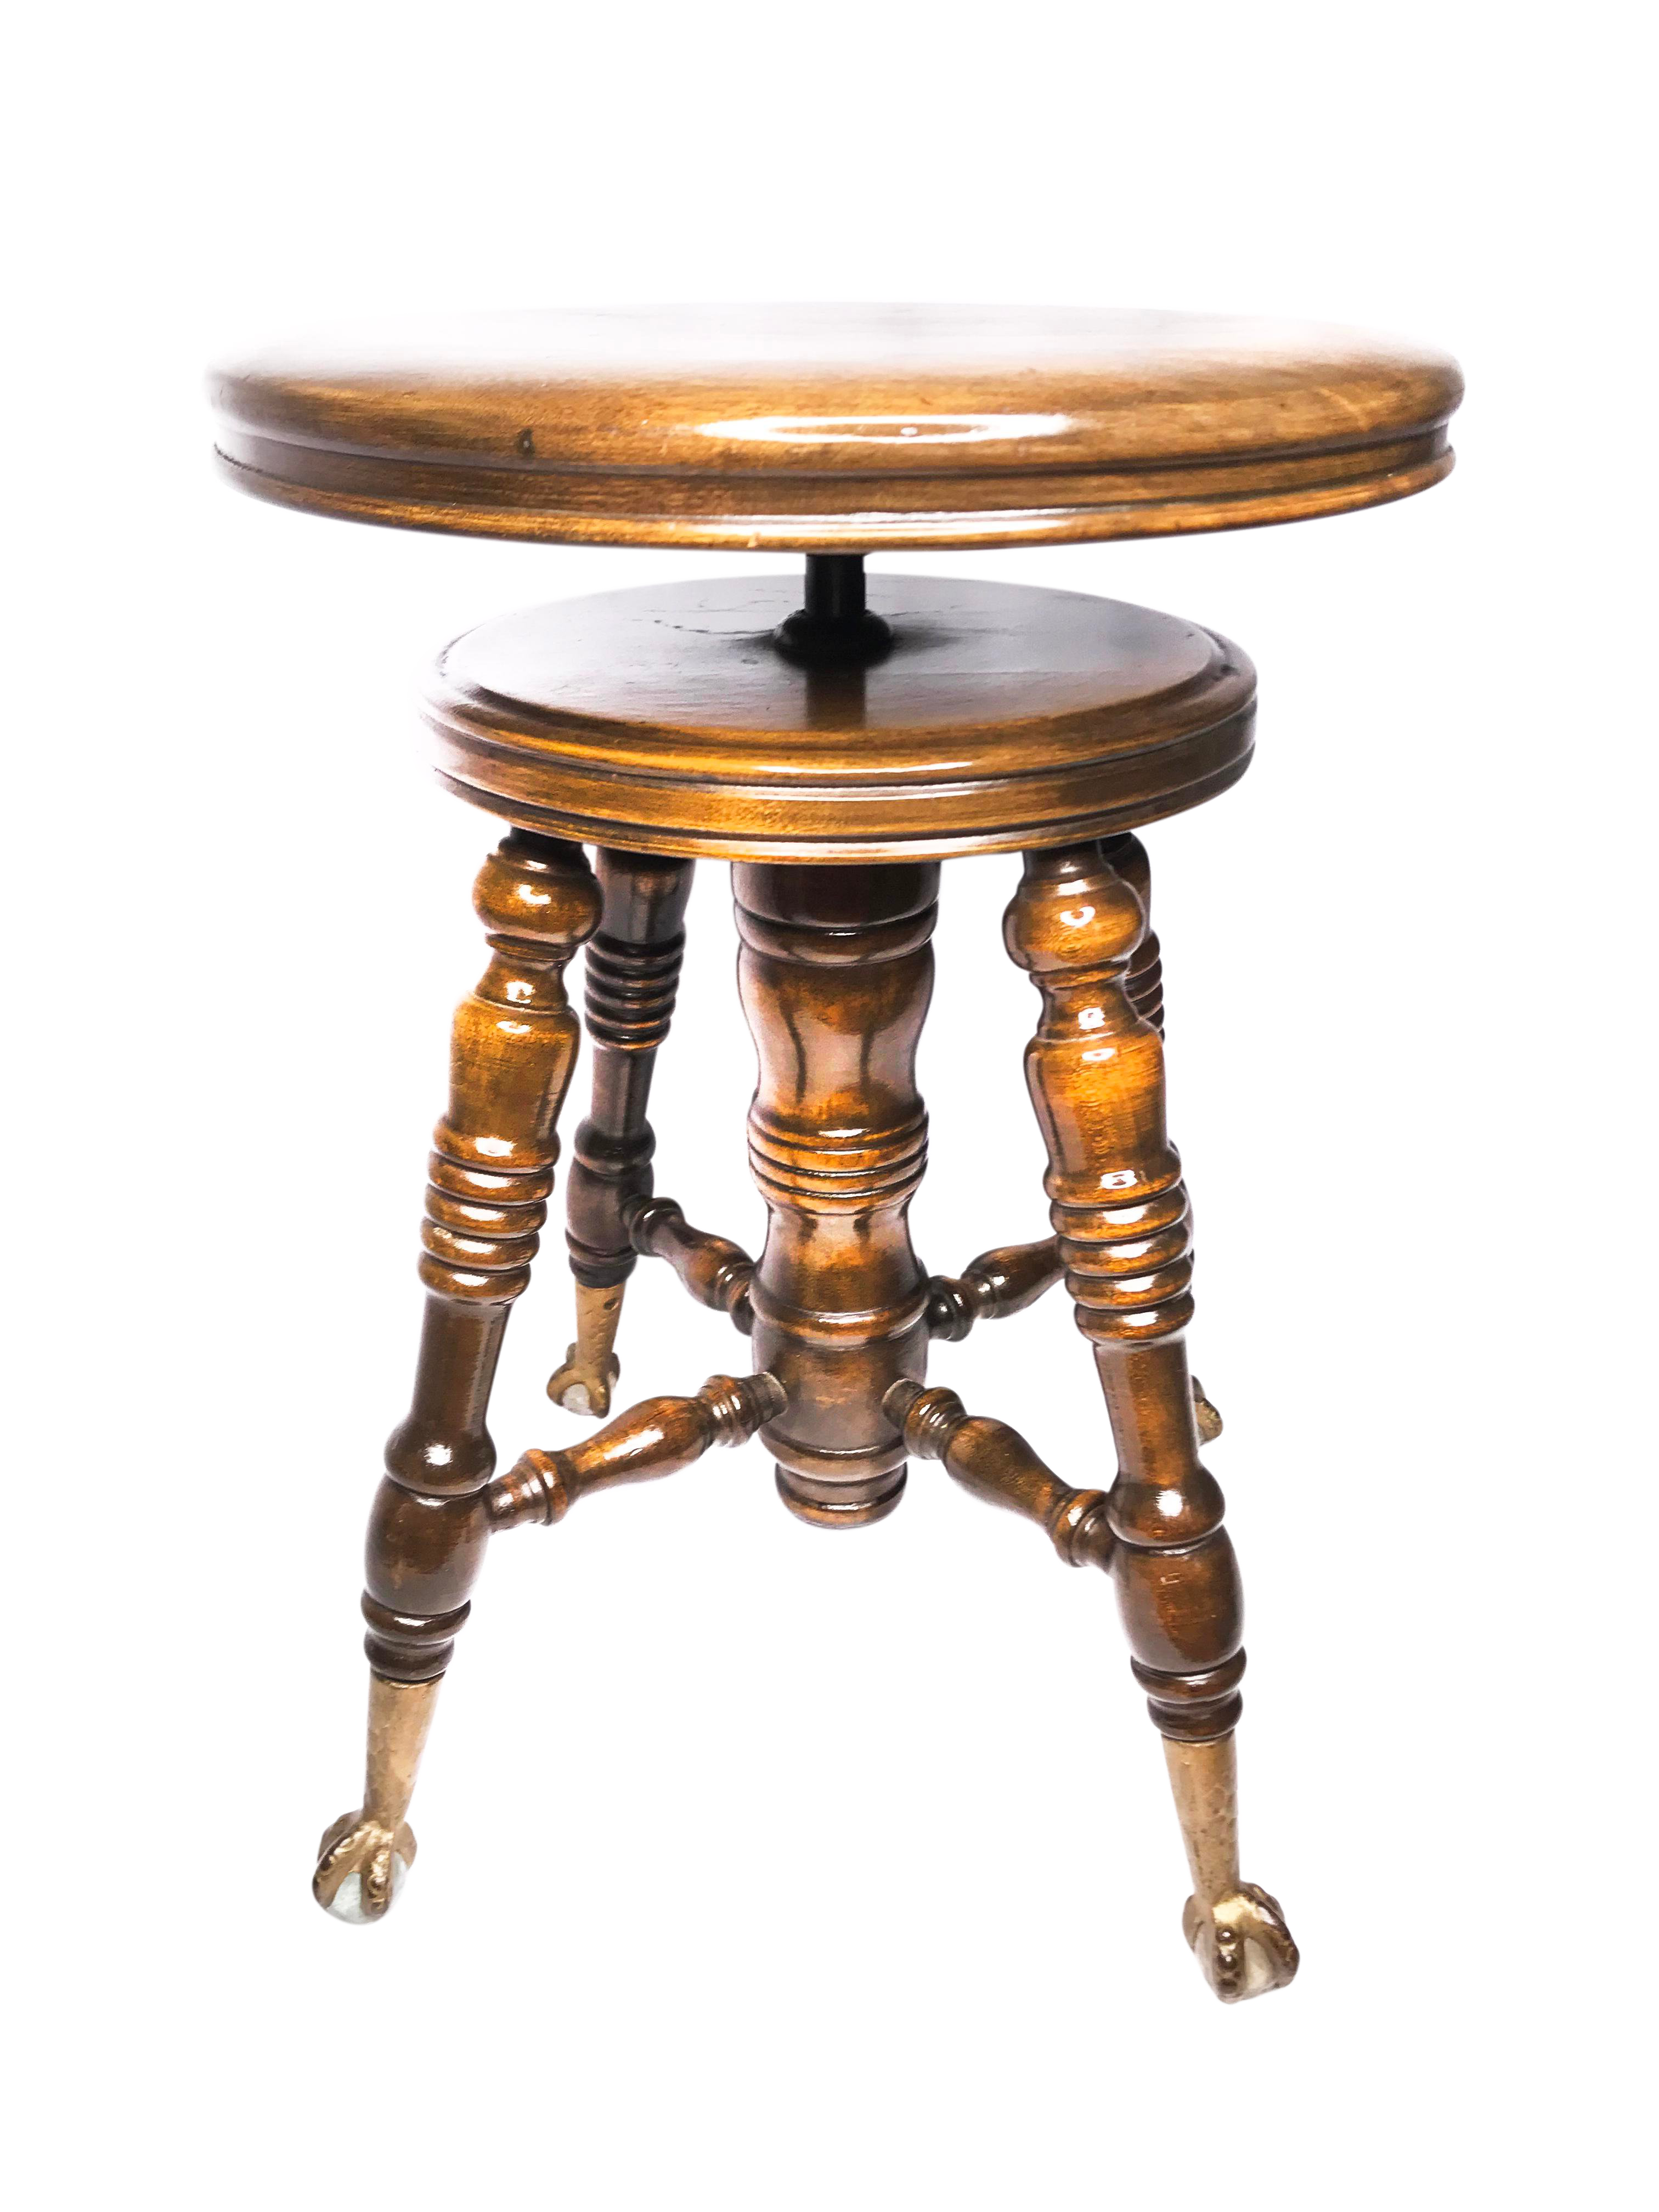 19th Century Art Deco Adjustable Oak Piano Stool With Claw Feet